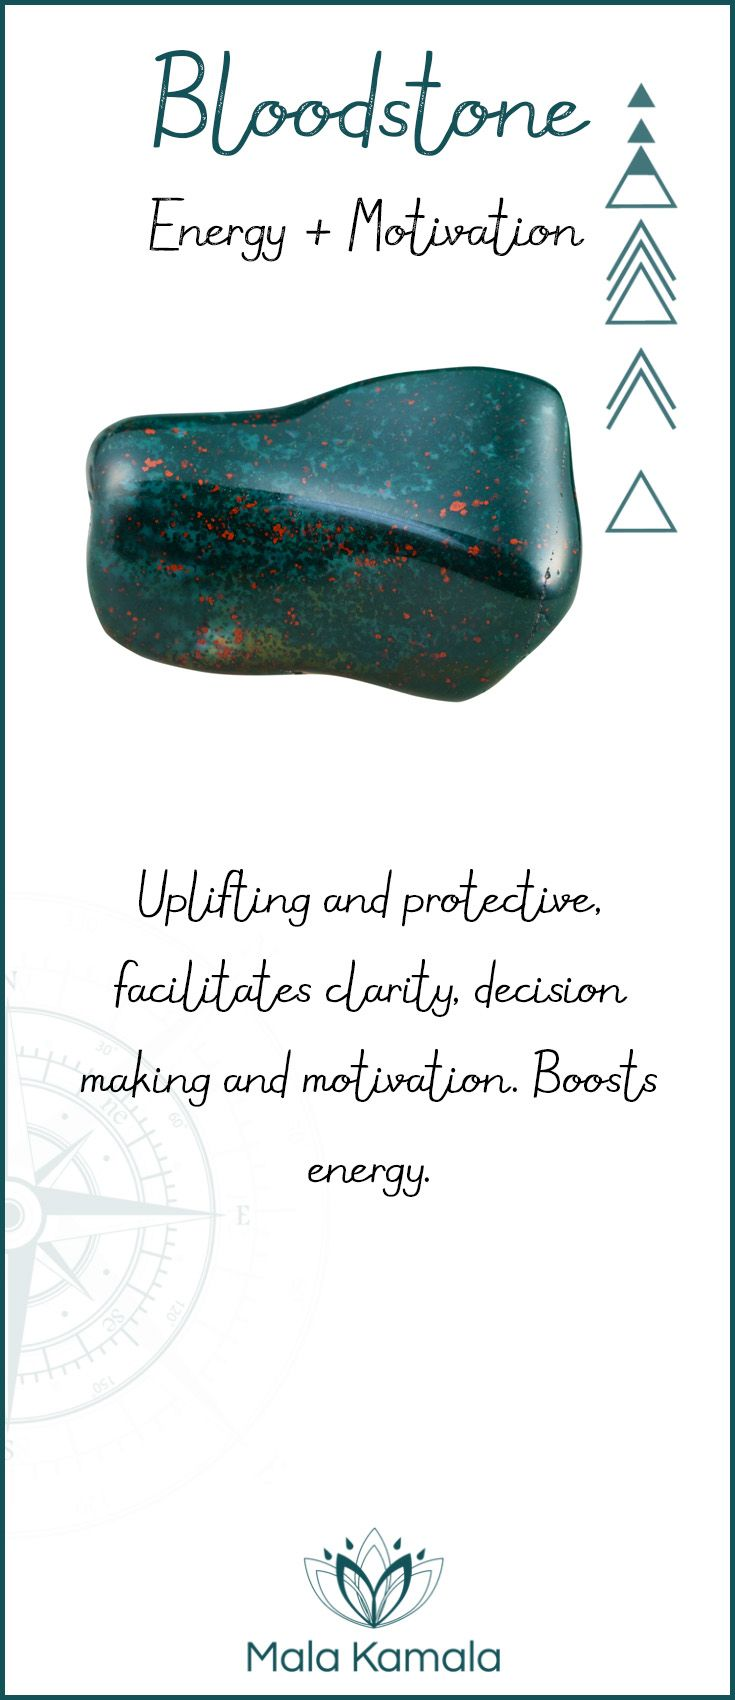 Pin To Save, Tap To Shop The Gem. What is the meaning and crystal and chakra healing properties of bloodstone? Mala Kamala Mala Beads - Malas, Mala Beads, Mala Bracelets, Tiny Intentions, Baby Necklaces, Yoga Jewelry, Meditation Jewelry, Baltic Amber Necklaces, Gemstone Jewelry, Chakra Healing and Crystal Healing Jewelry, Mala Necklaces, Prayer Beads, Sacred Jewelry, Bohemian Boho Jewelry, Childrens and Babies Jewelry.